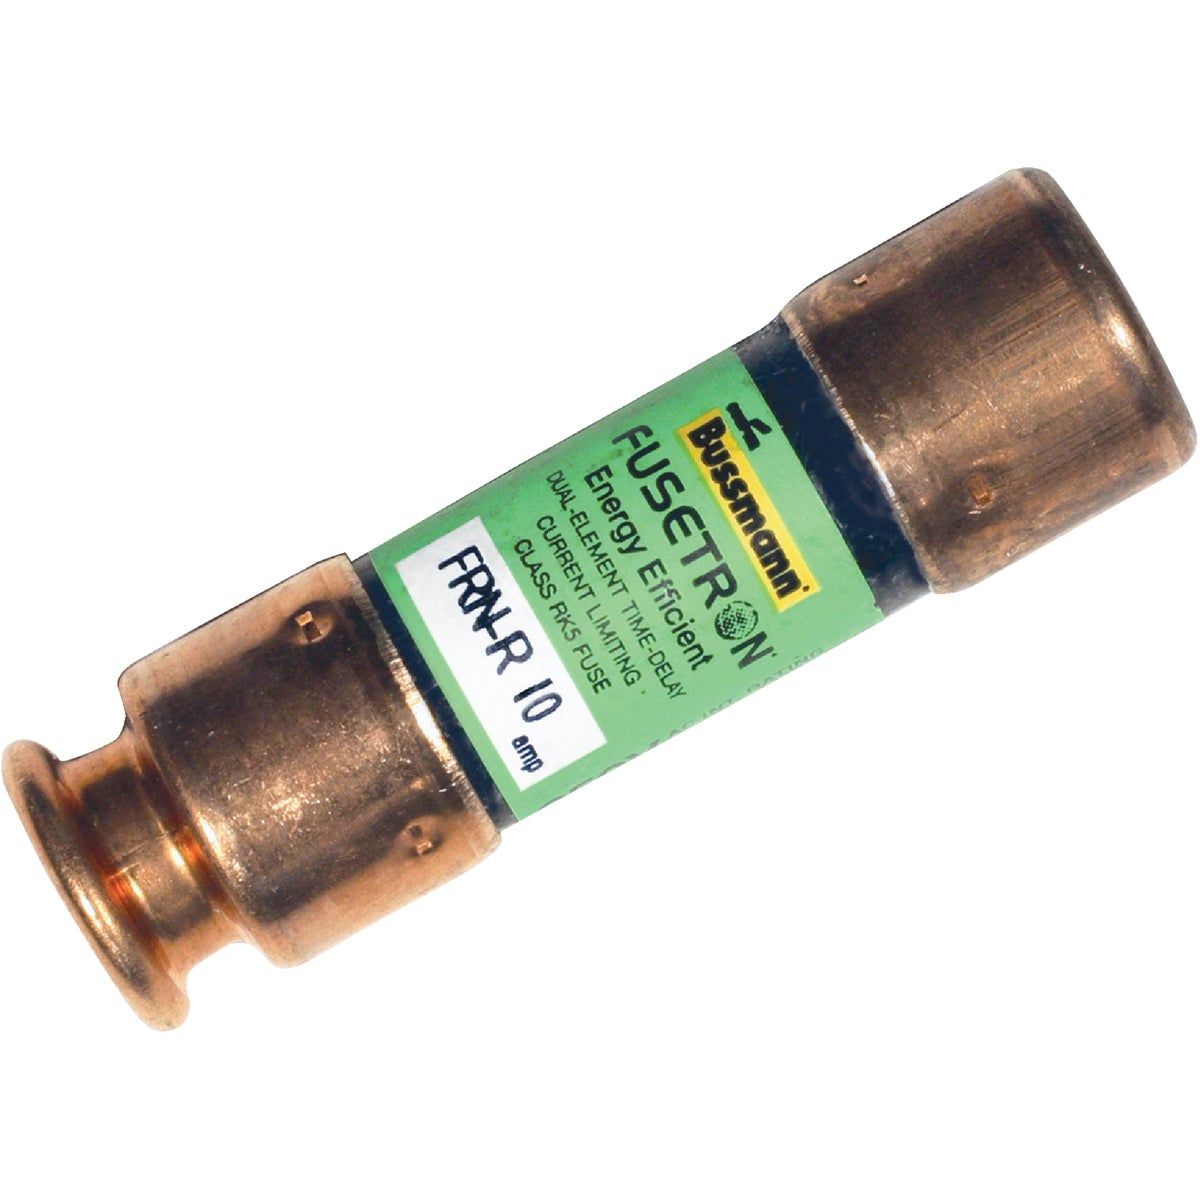 10A 250V CARTRIDGE FUSE